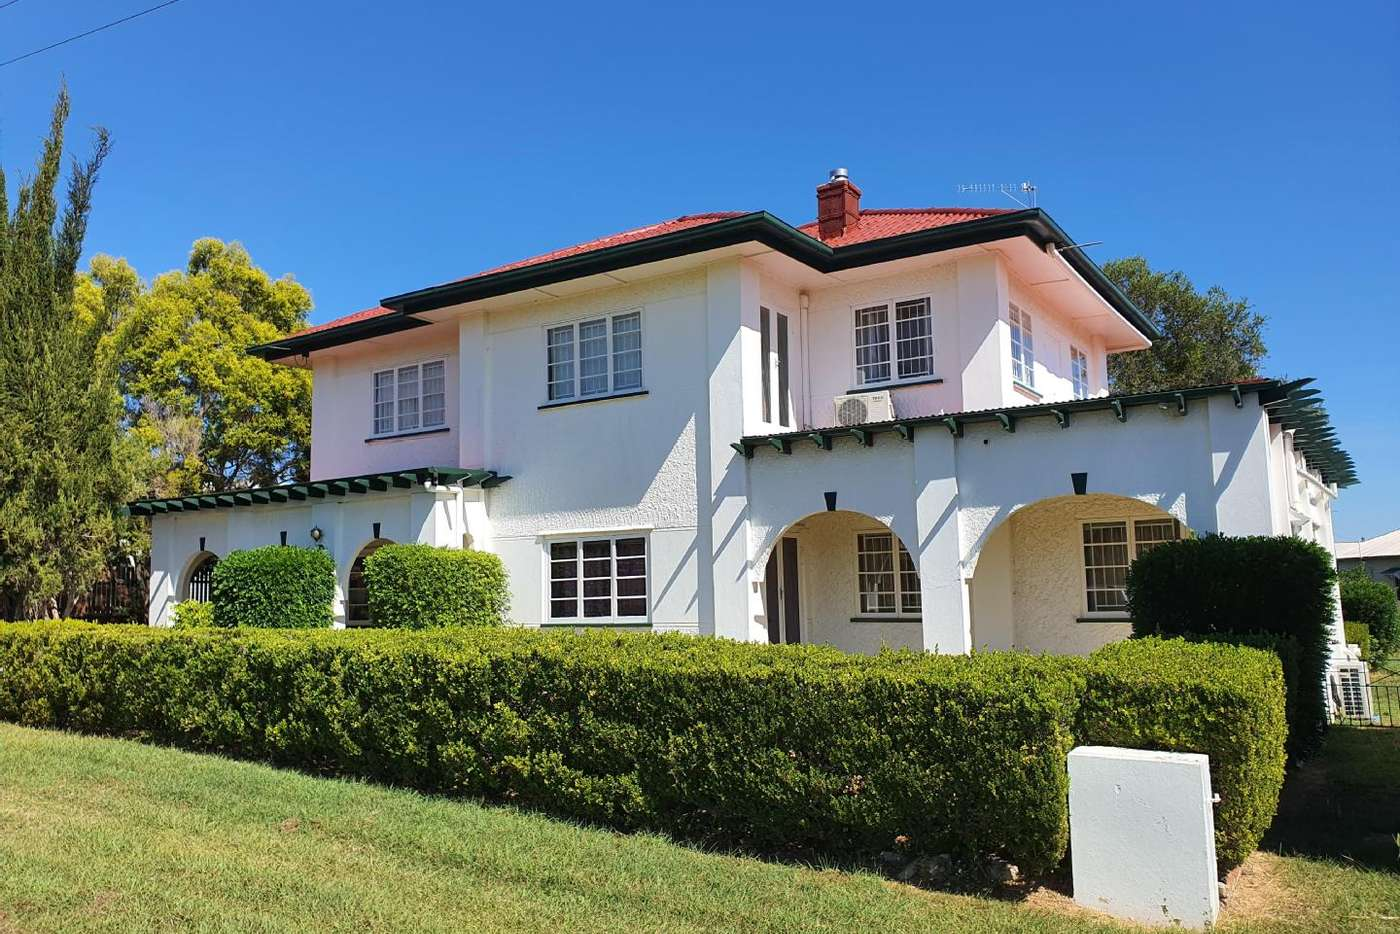 Main view of Homely house listing, 12 Edison Street, Monto QLD 4630